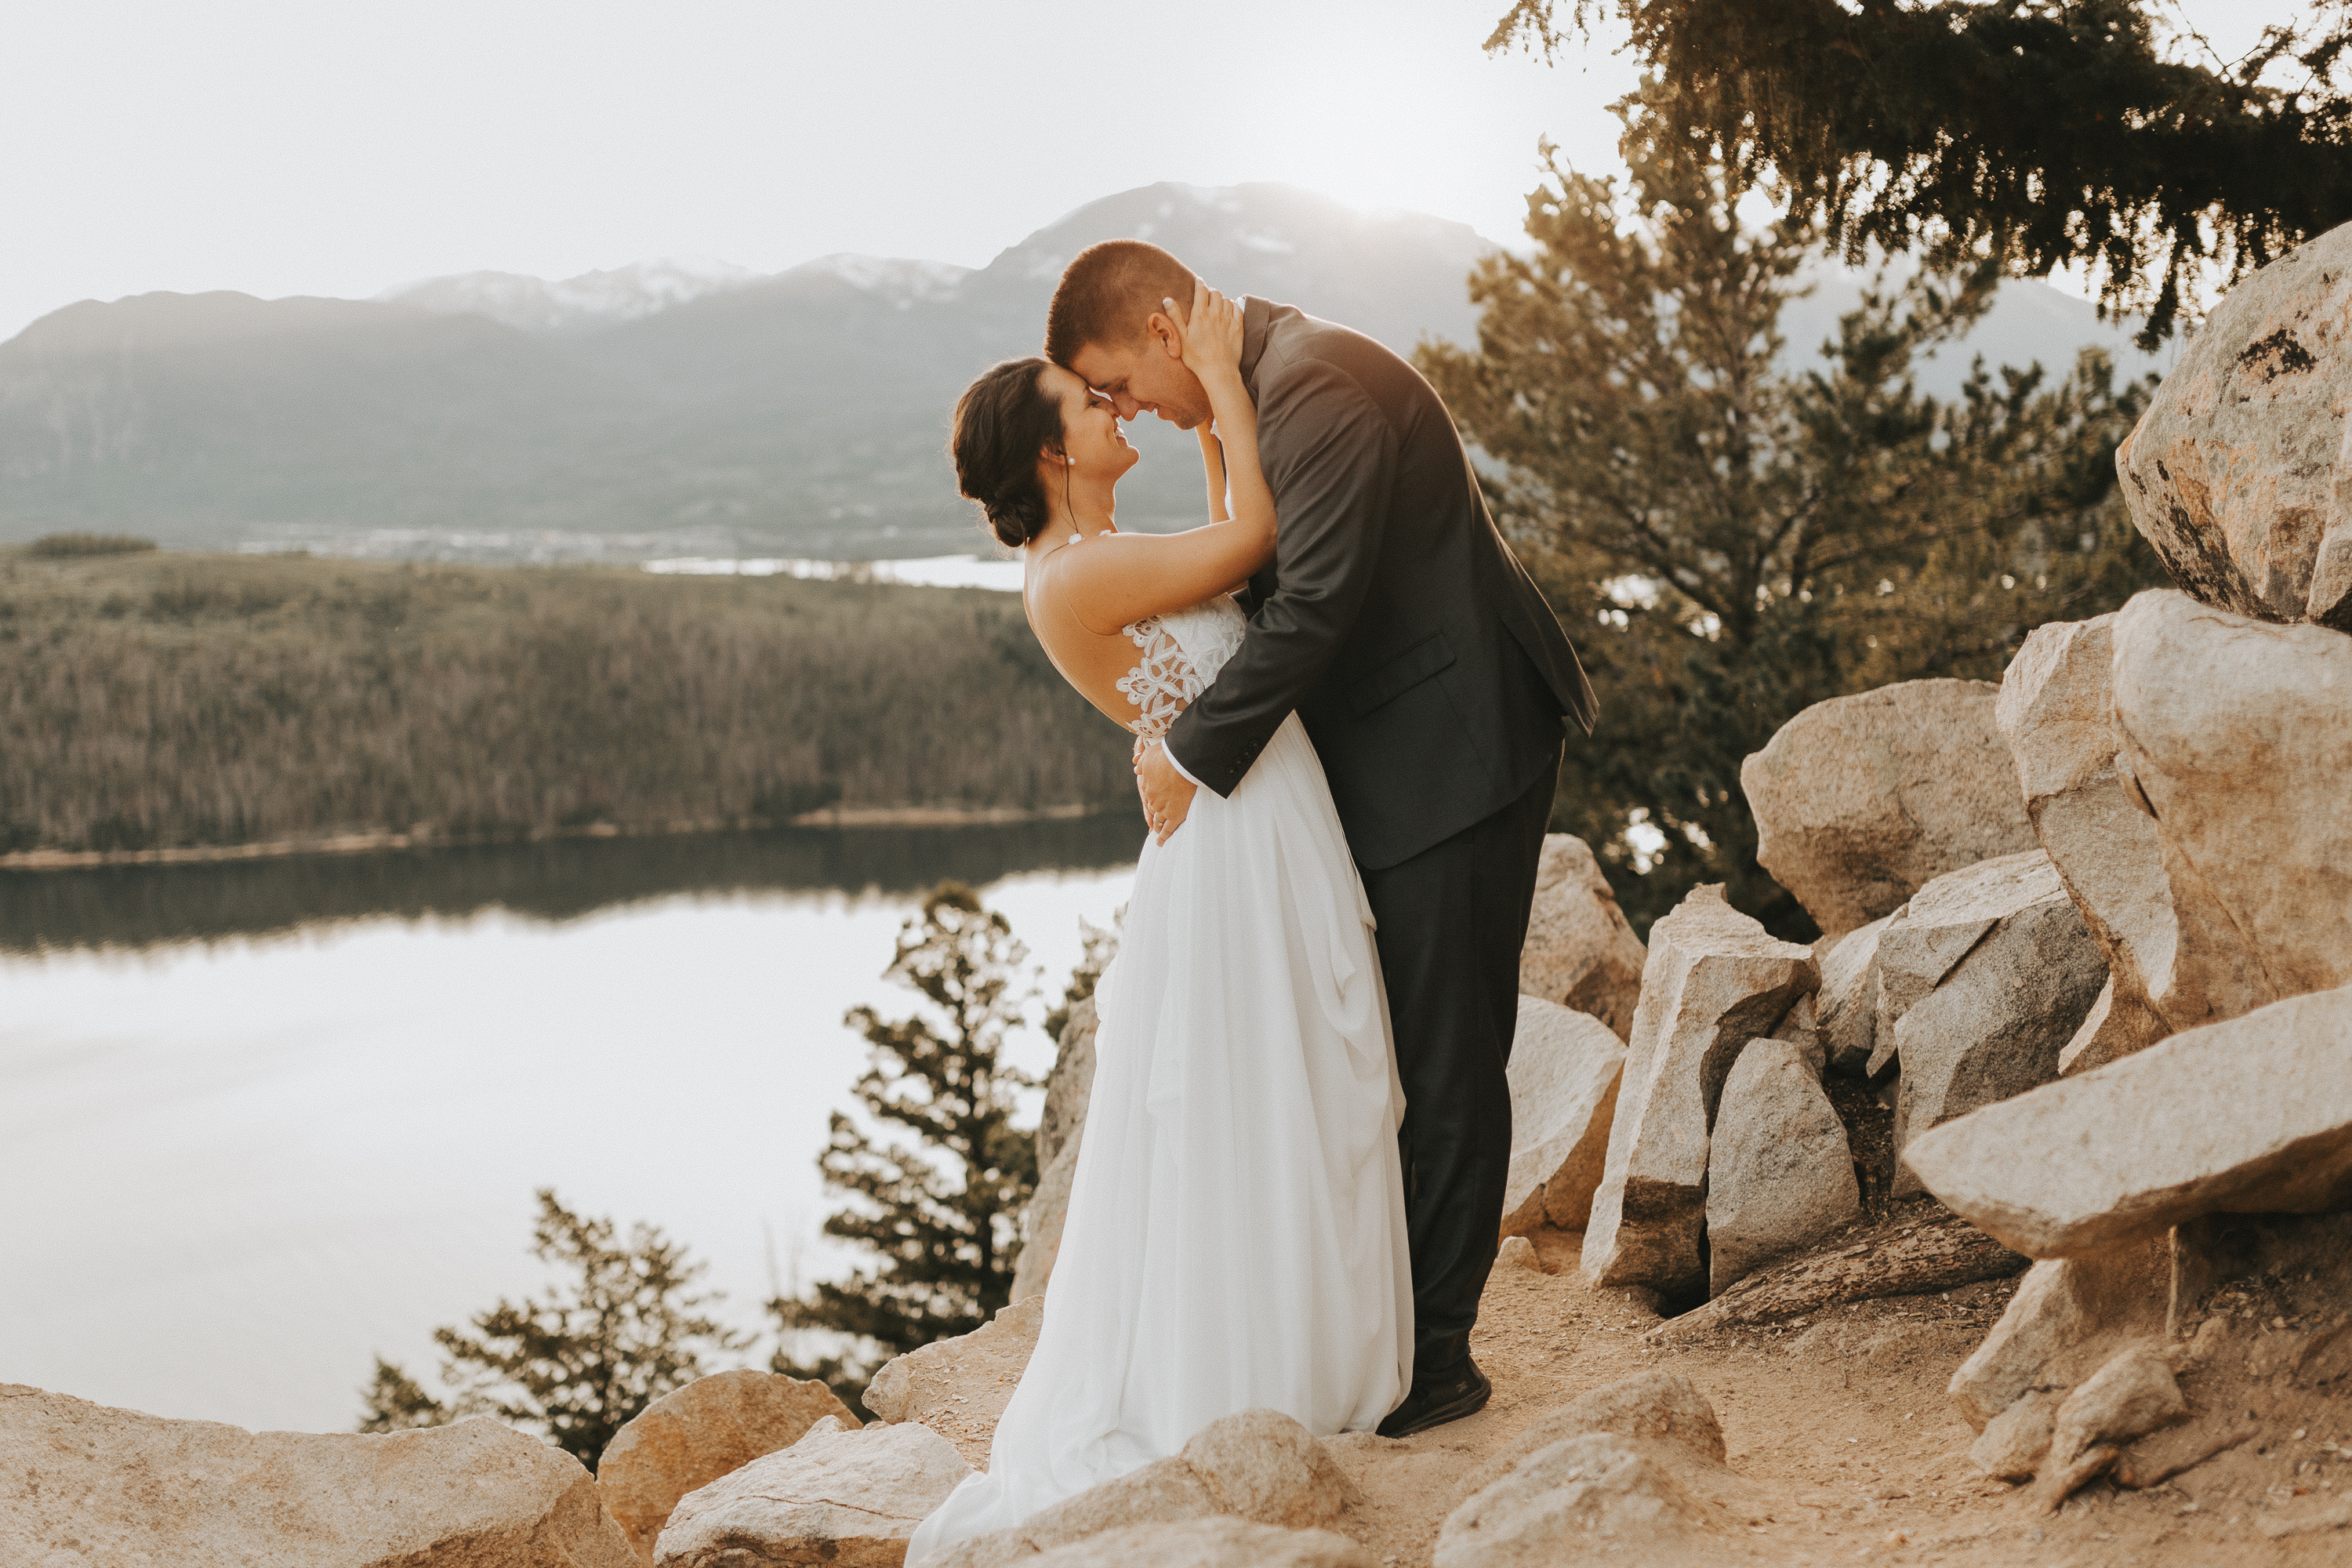 Lake-Dillon-Colorado-Elopement-Photography-Alicia-D'Elia-Photography